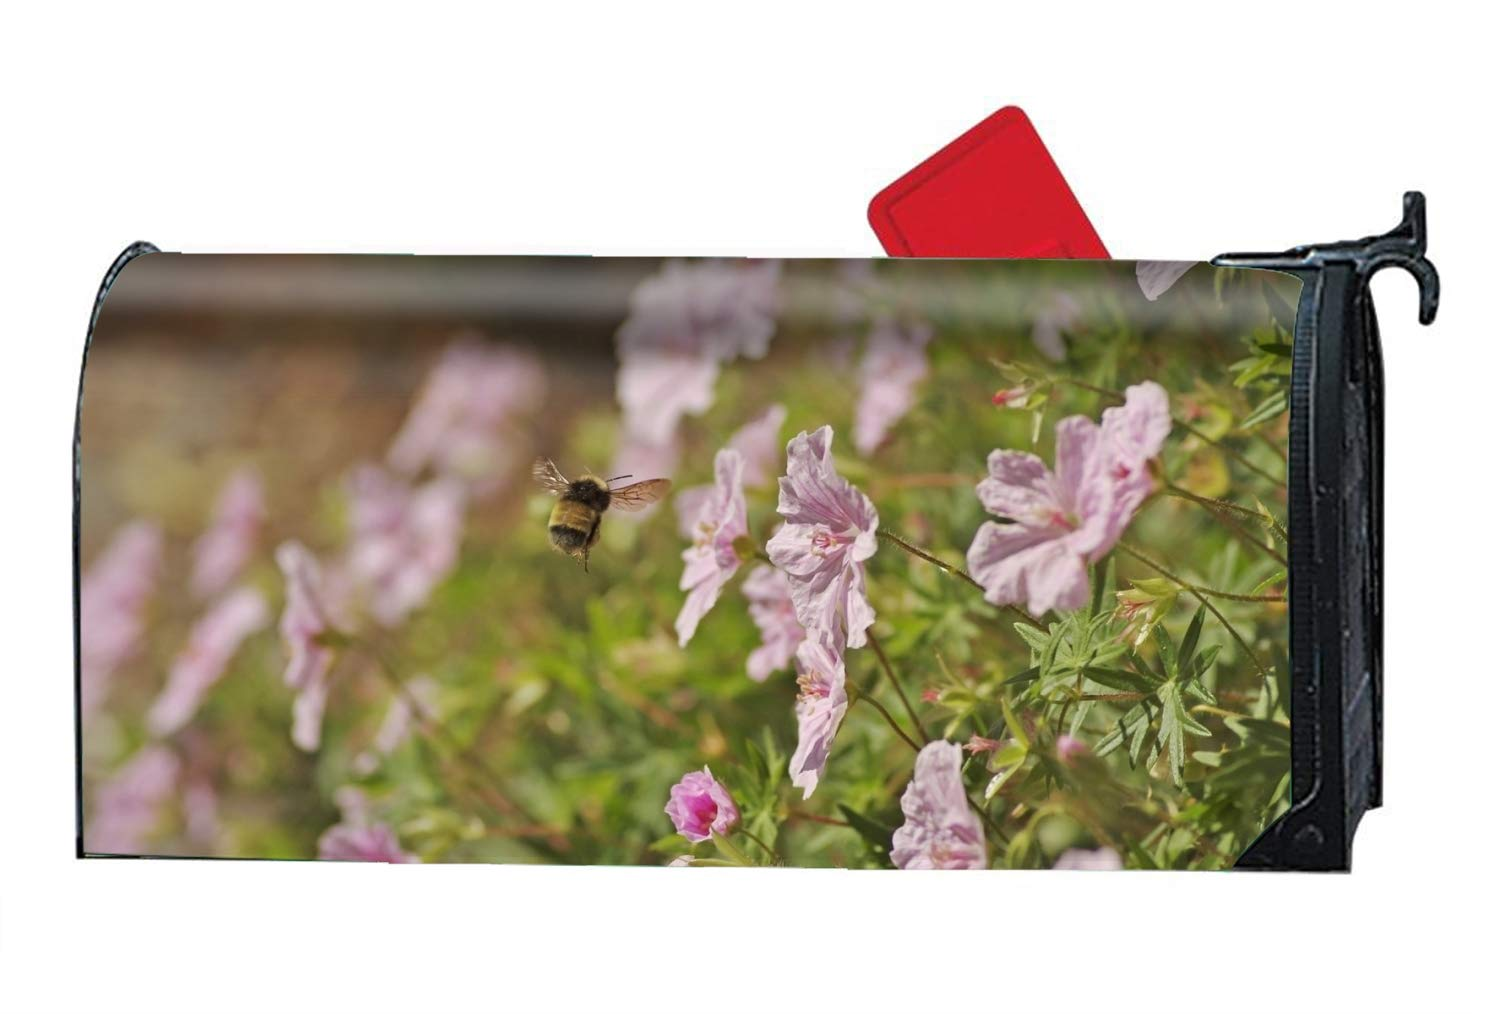 KSLIDS Earth Flowers Bee Mailbox Cover Standard Seasonal Customized Mailbox Wraps by KSLIDS (Image #1)